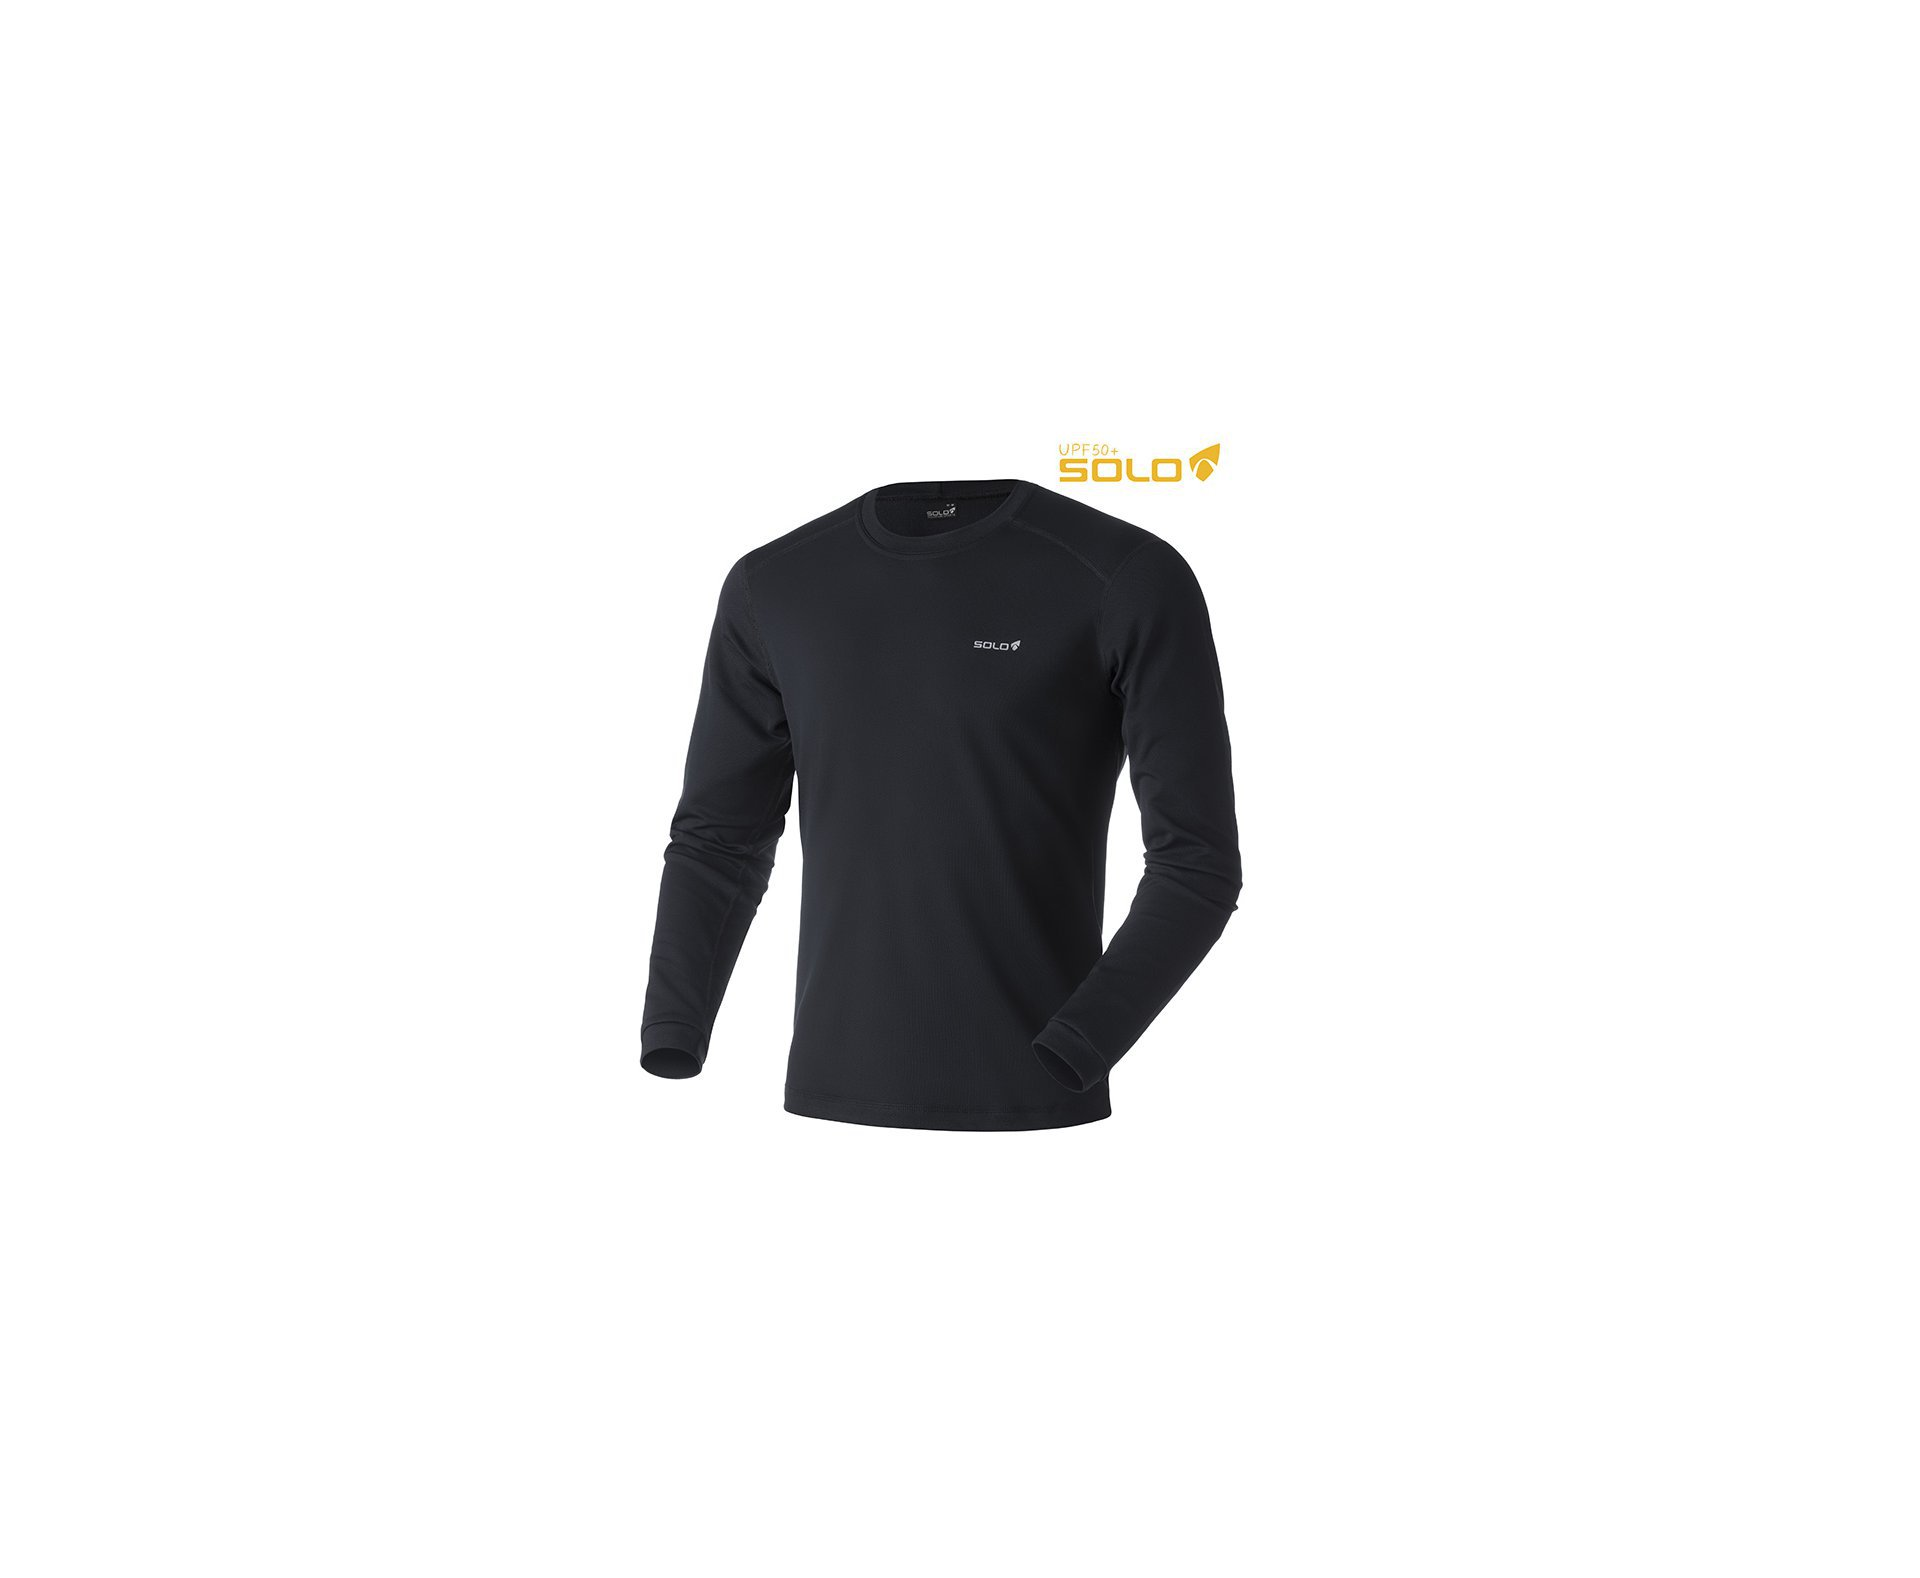 Blusa X-thermo Ds T-shirt Preto - Solo